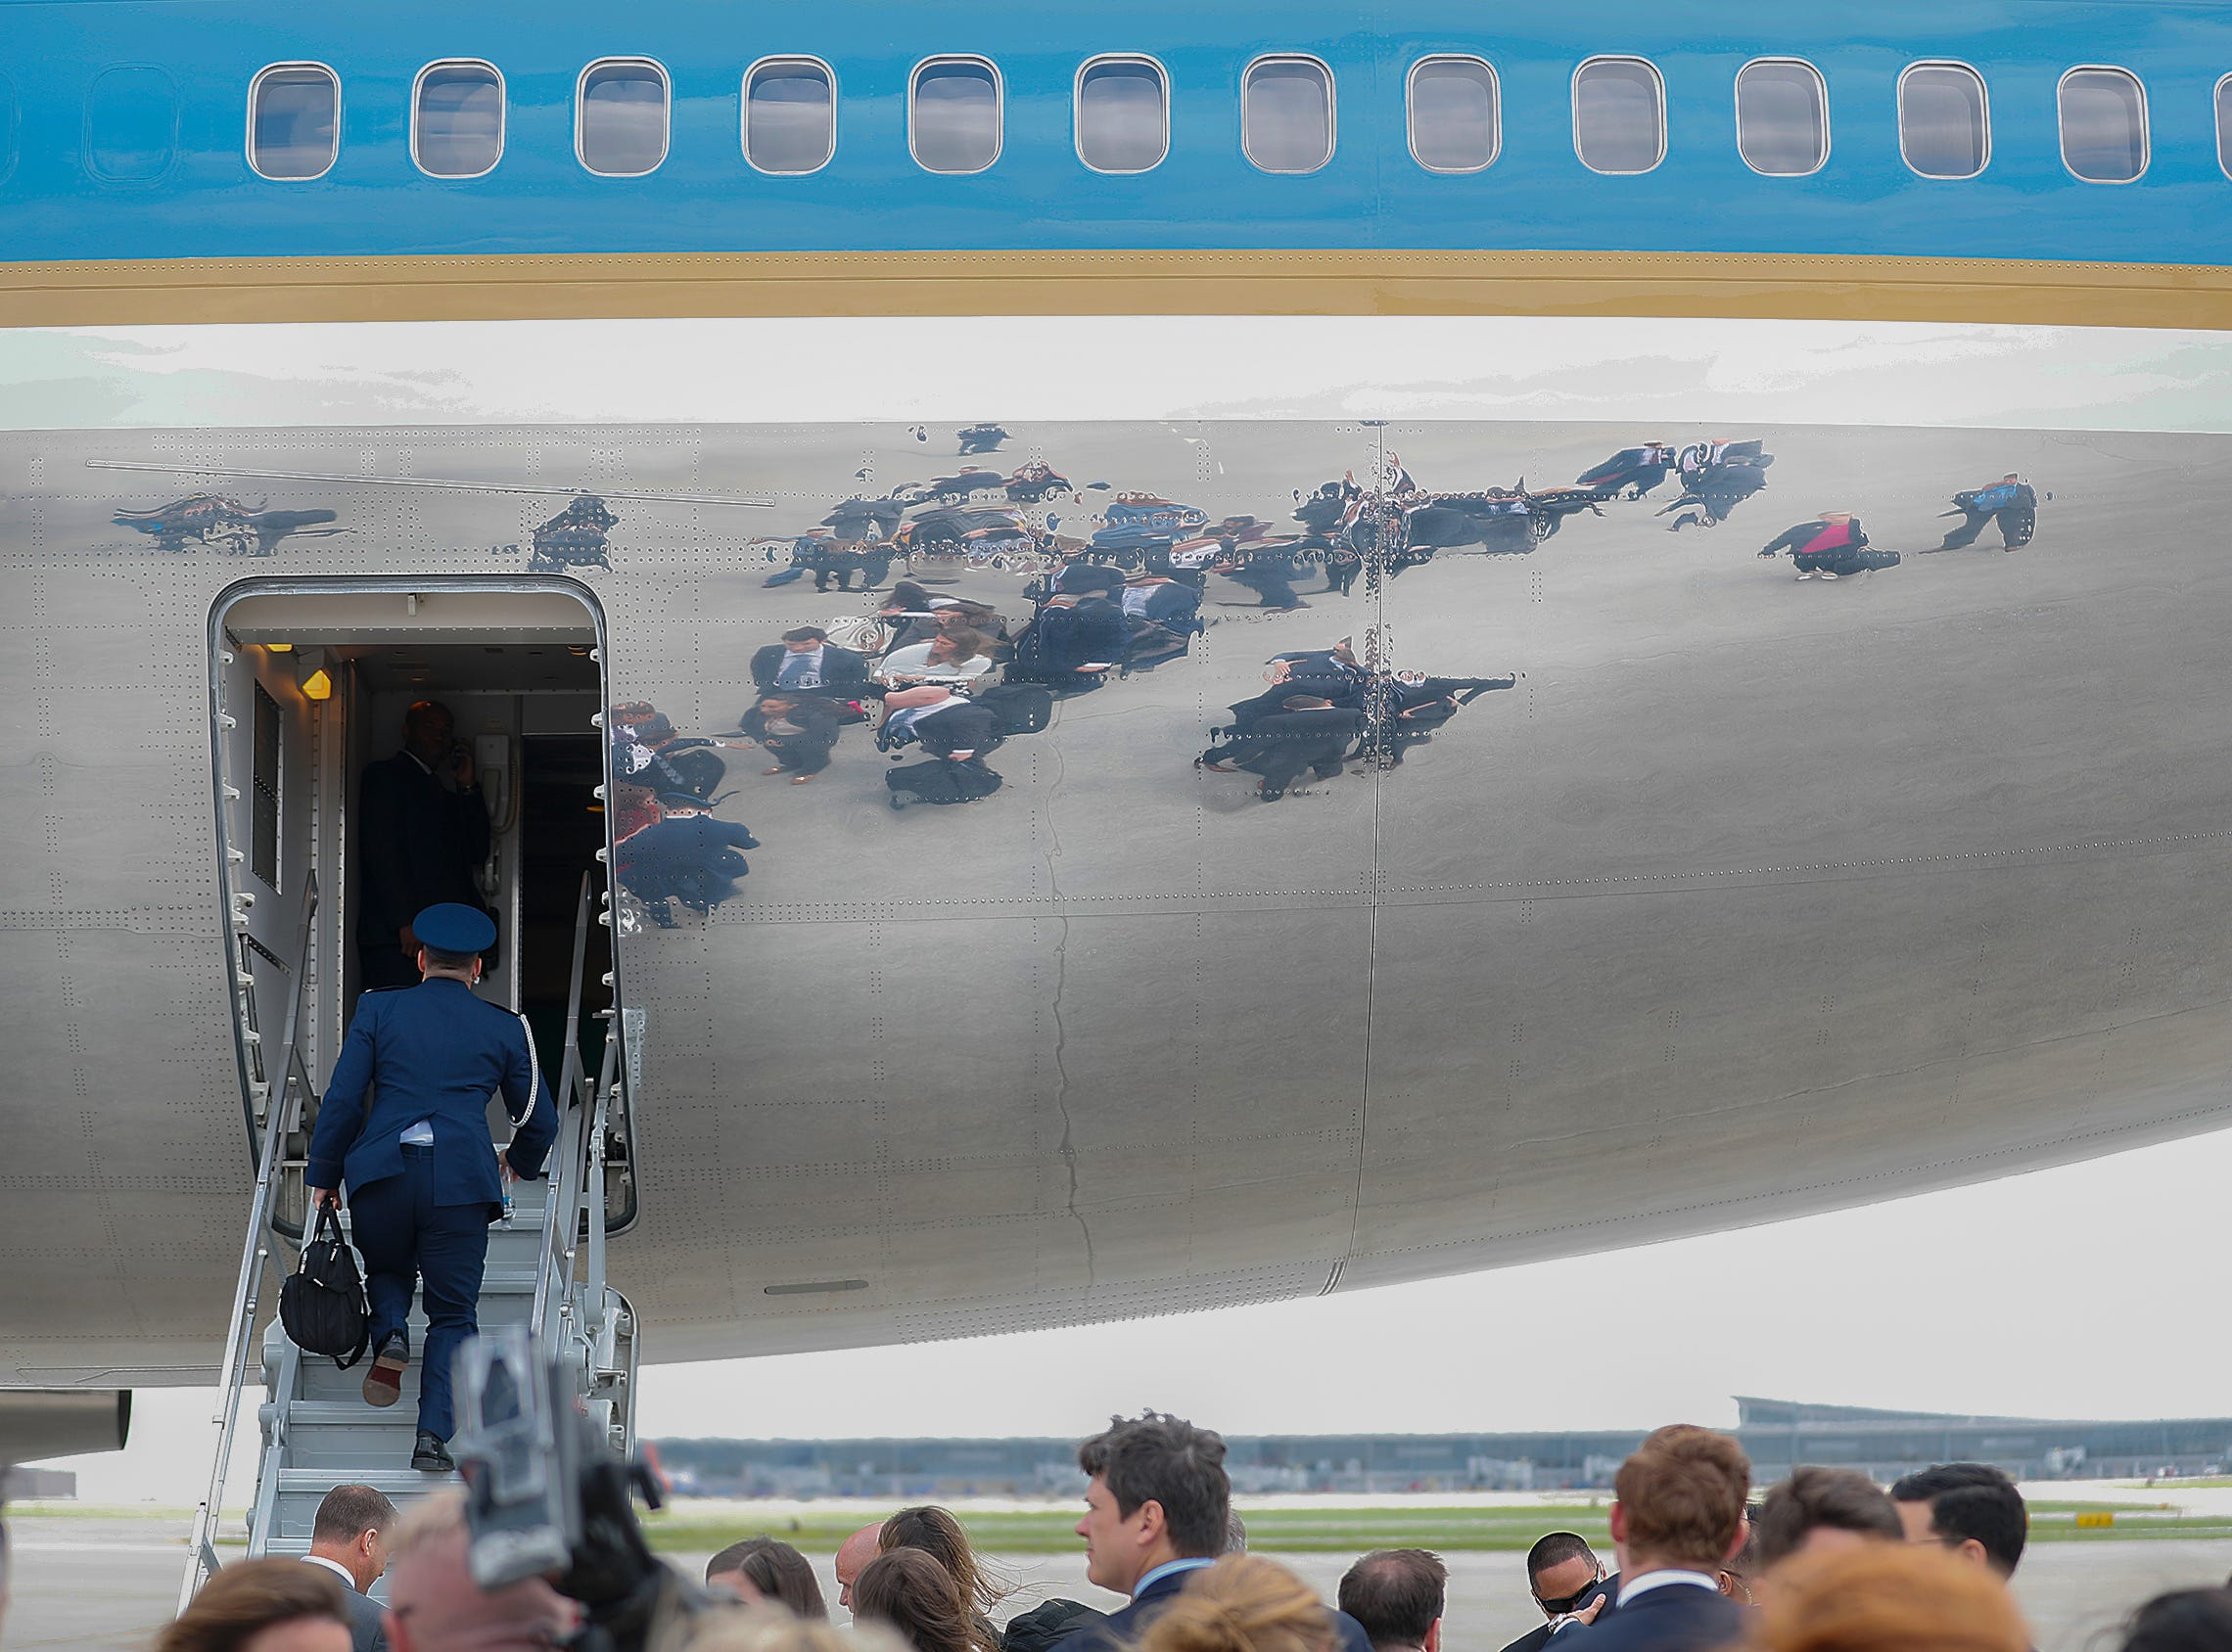 Support personal and the national media board the rear of Air Force One as they prepare to depart Indianapolis International Airport. President Donald Trump and VP Mike Pence spoke at the NRA-ILA Leadership Forum at Lucas Oil Stadium on Friday, April 26, 2019.